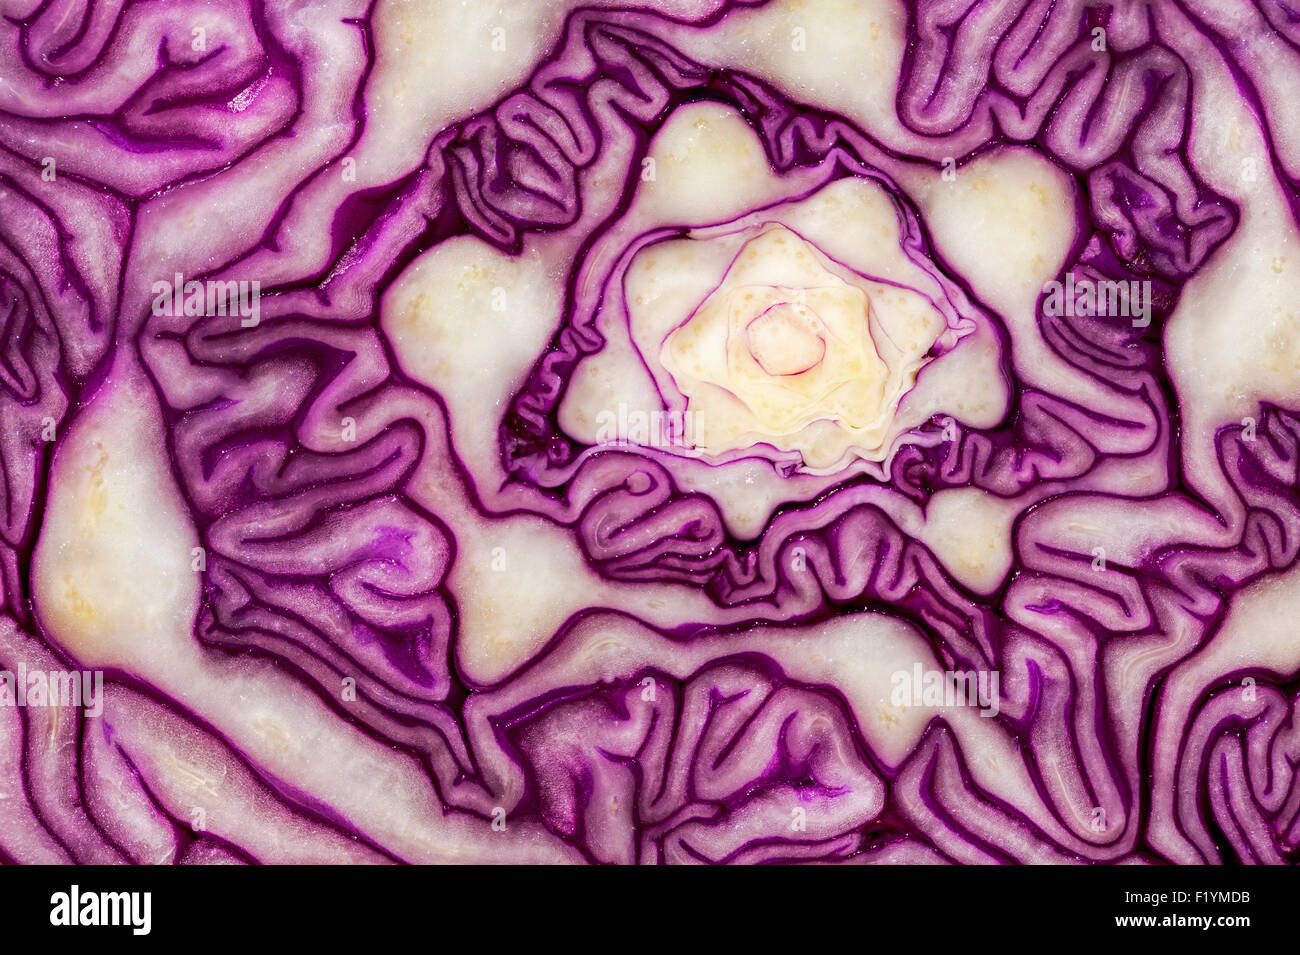 Detail,Canada,Red Cabbage,Extreme Close Up - Stock Image